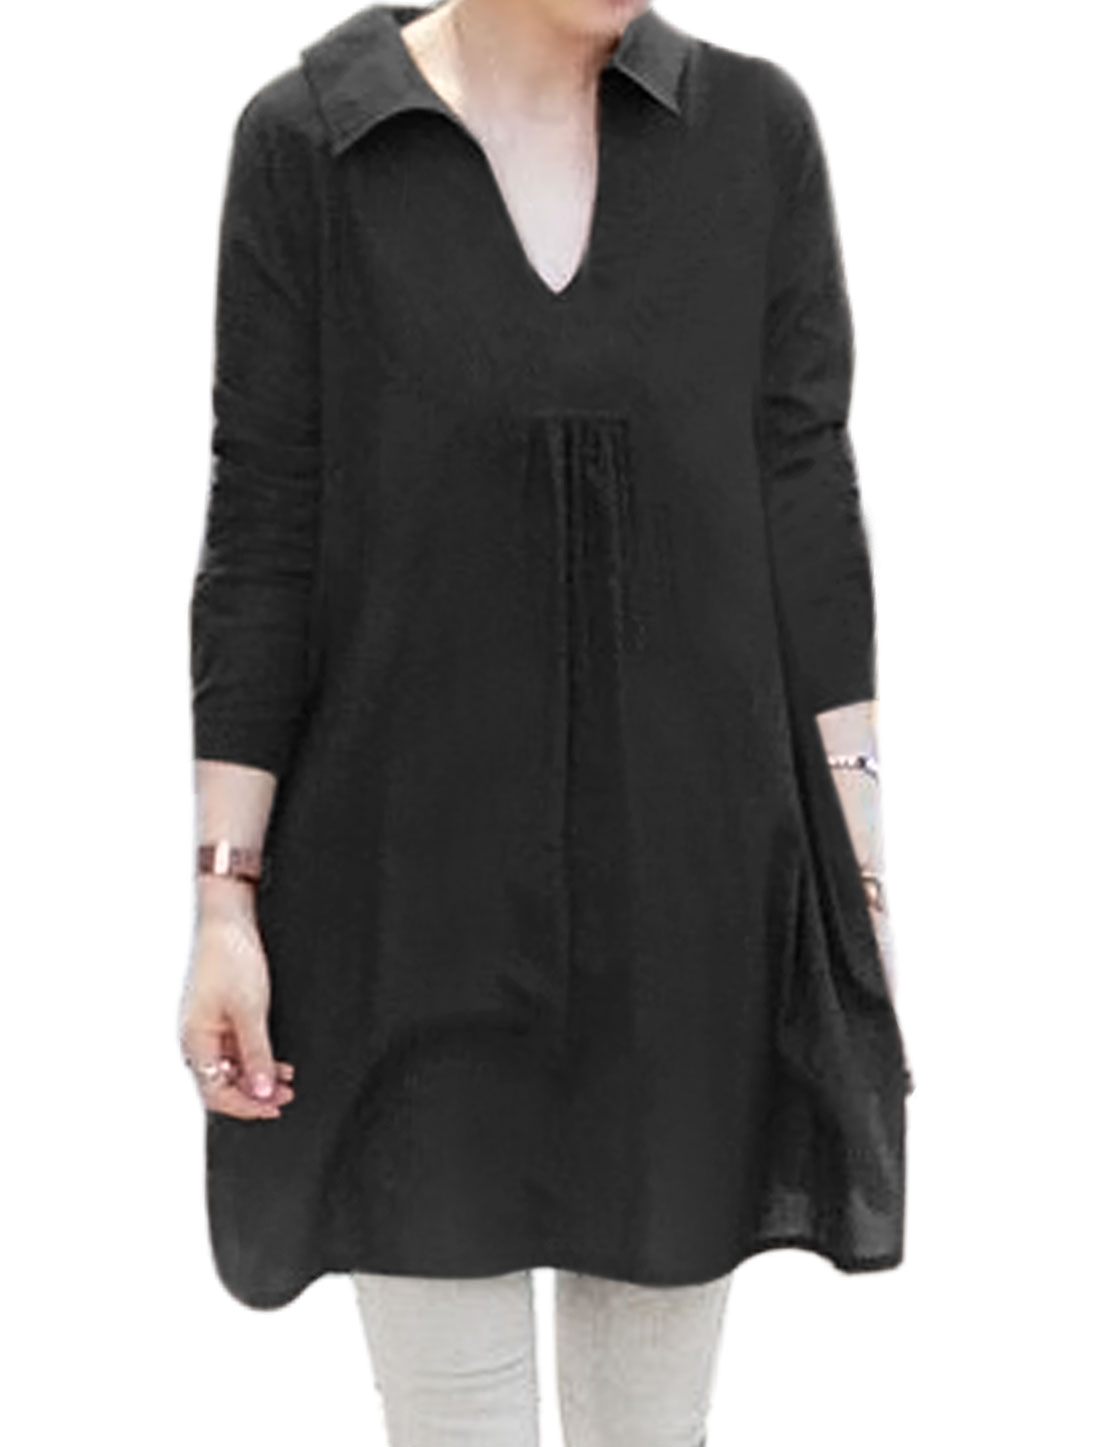 Women Long Sleeves Side Splits Loose Tunic Shirt Black XS